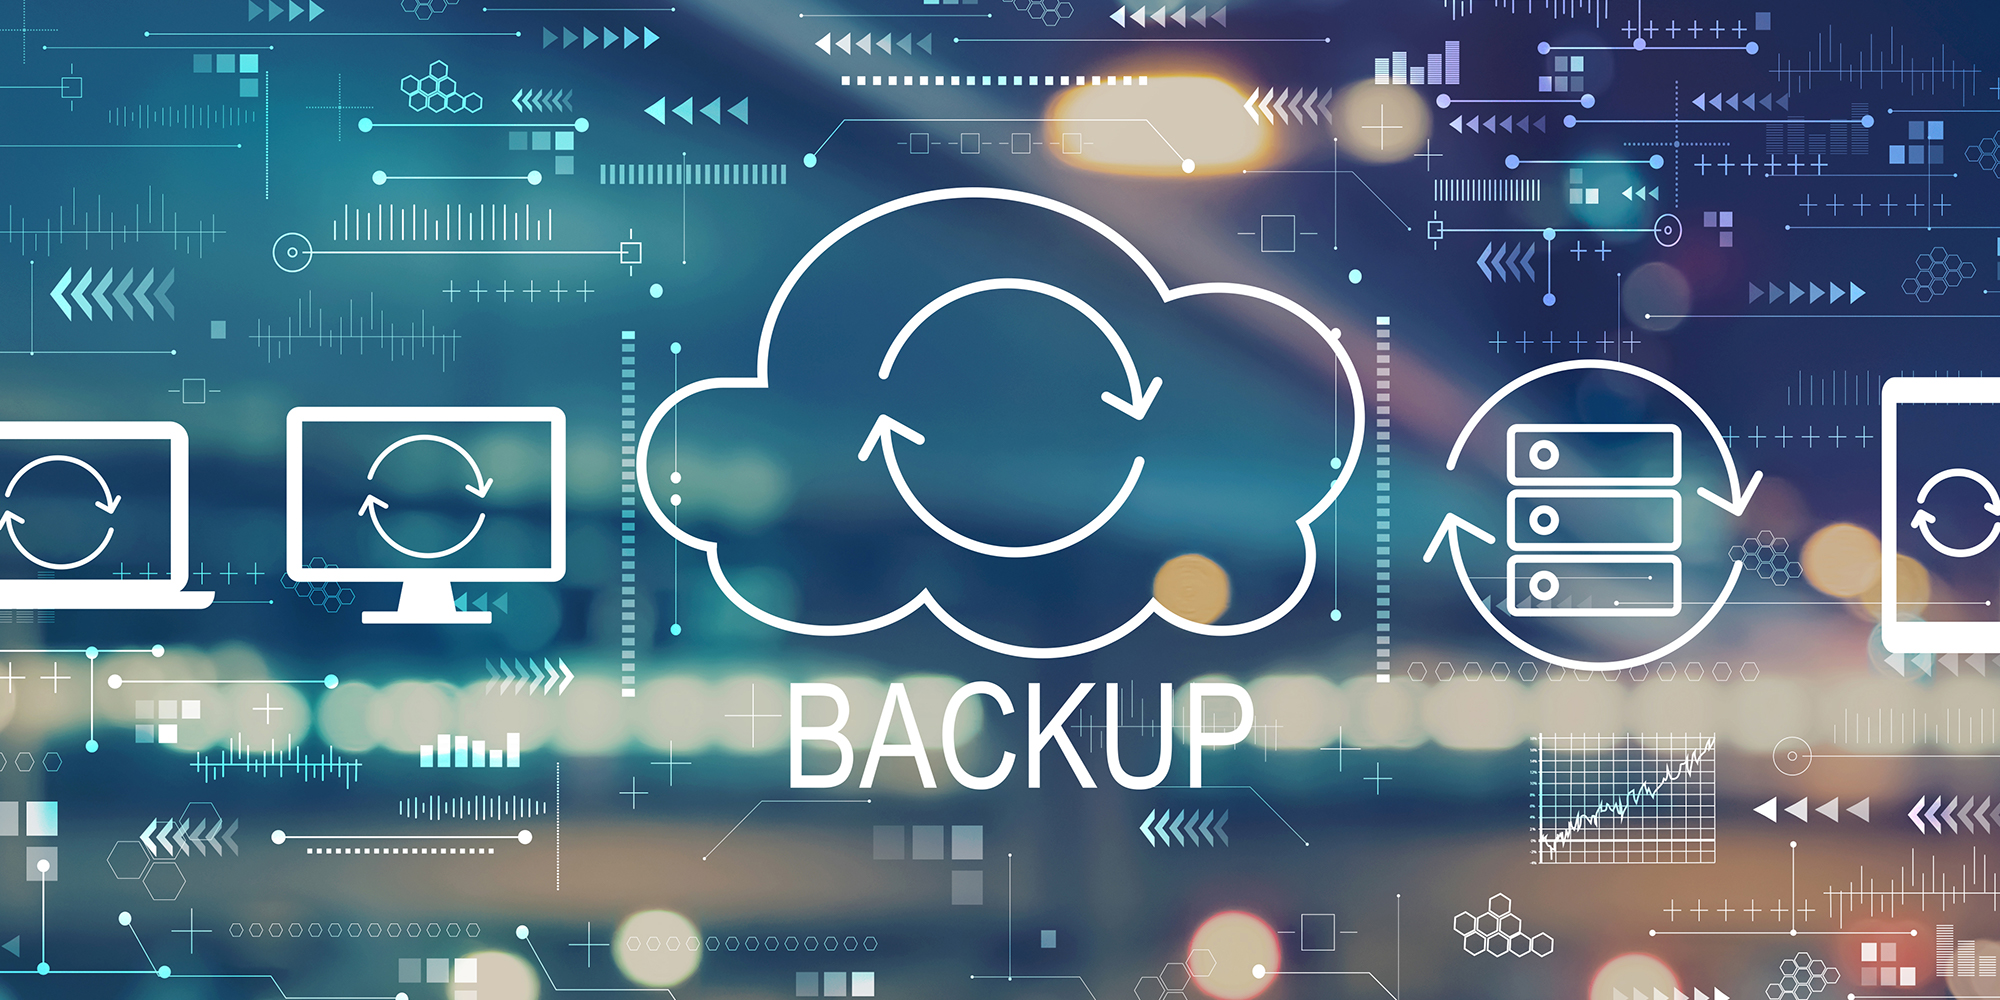 dedicated-hosting-backup-strategy-for-vps-dedicated-servers